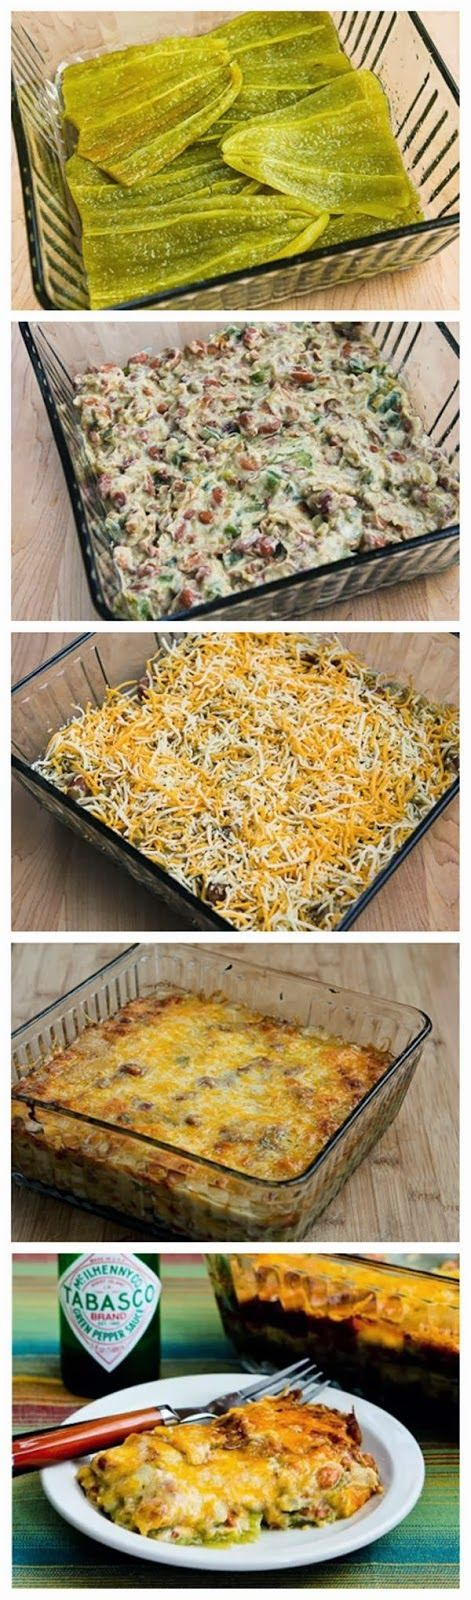 Vegetarian Green Chile and Pinto Bean Layered Mexican Casserole